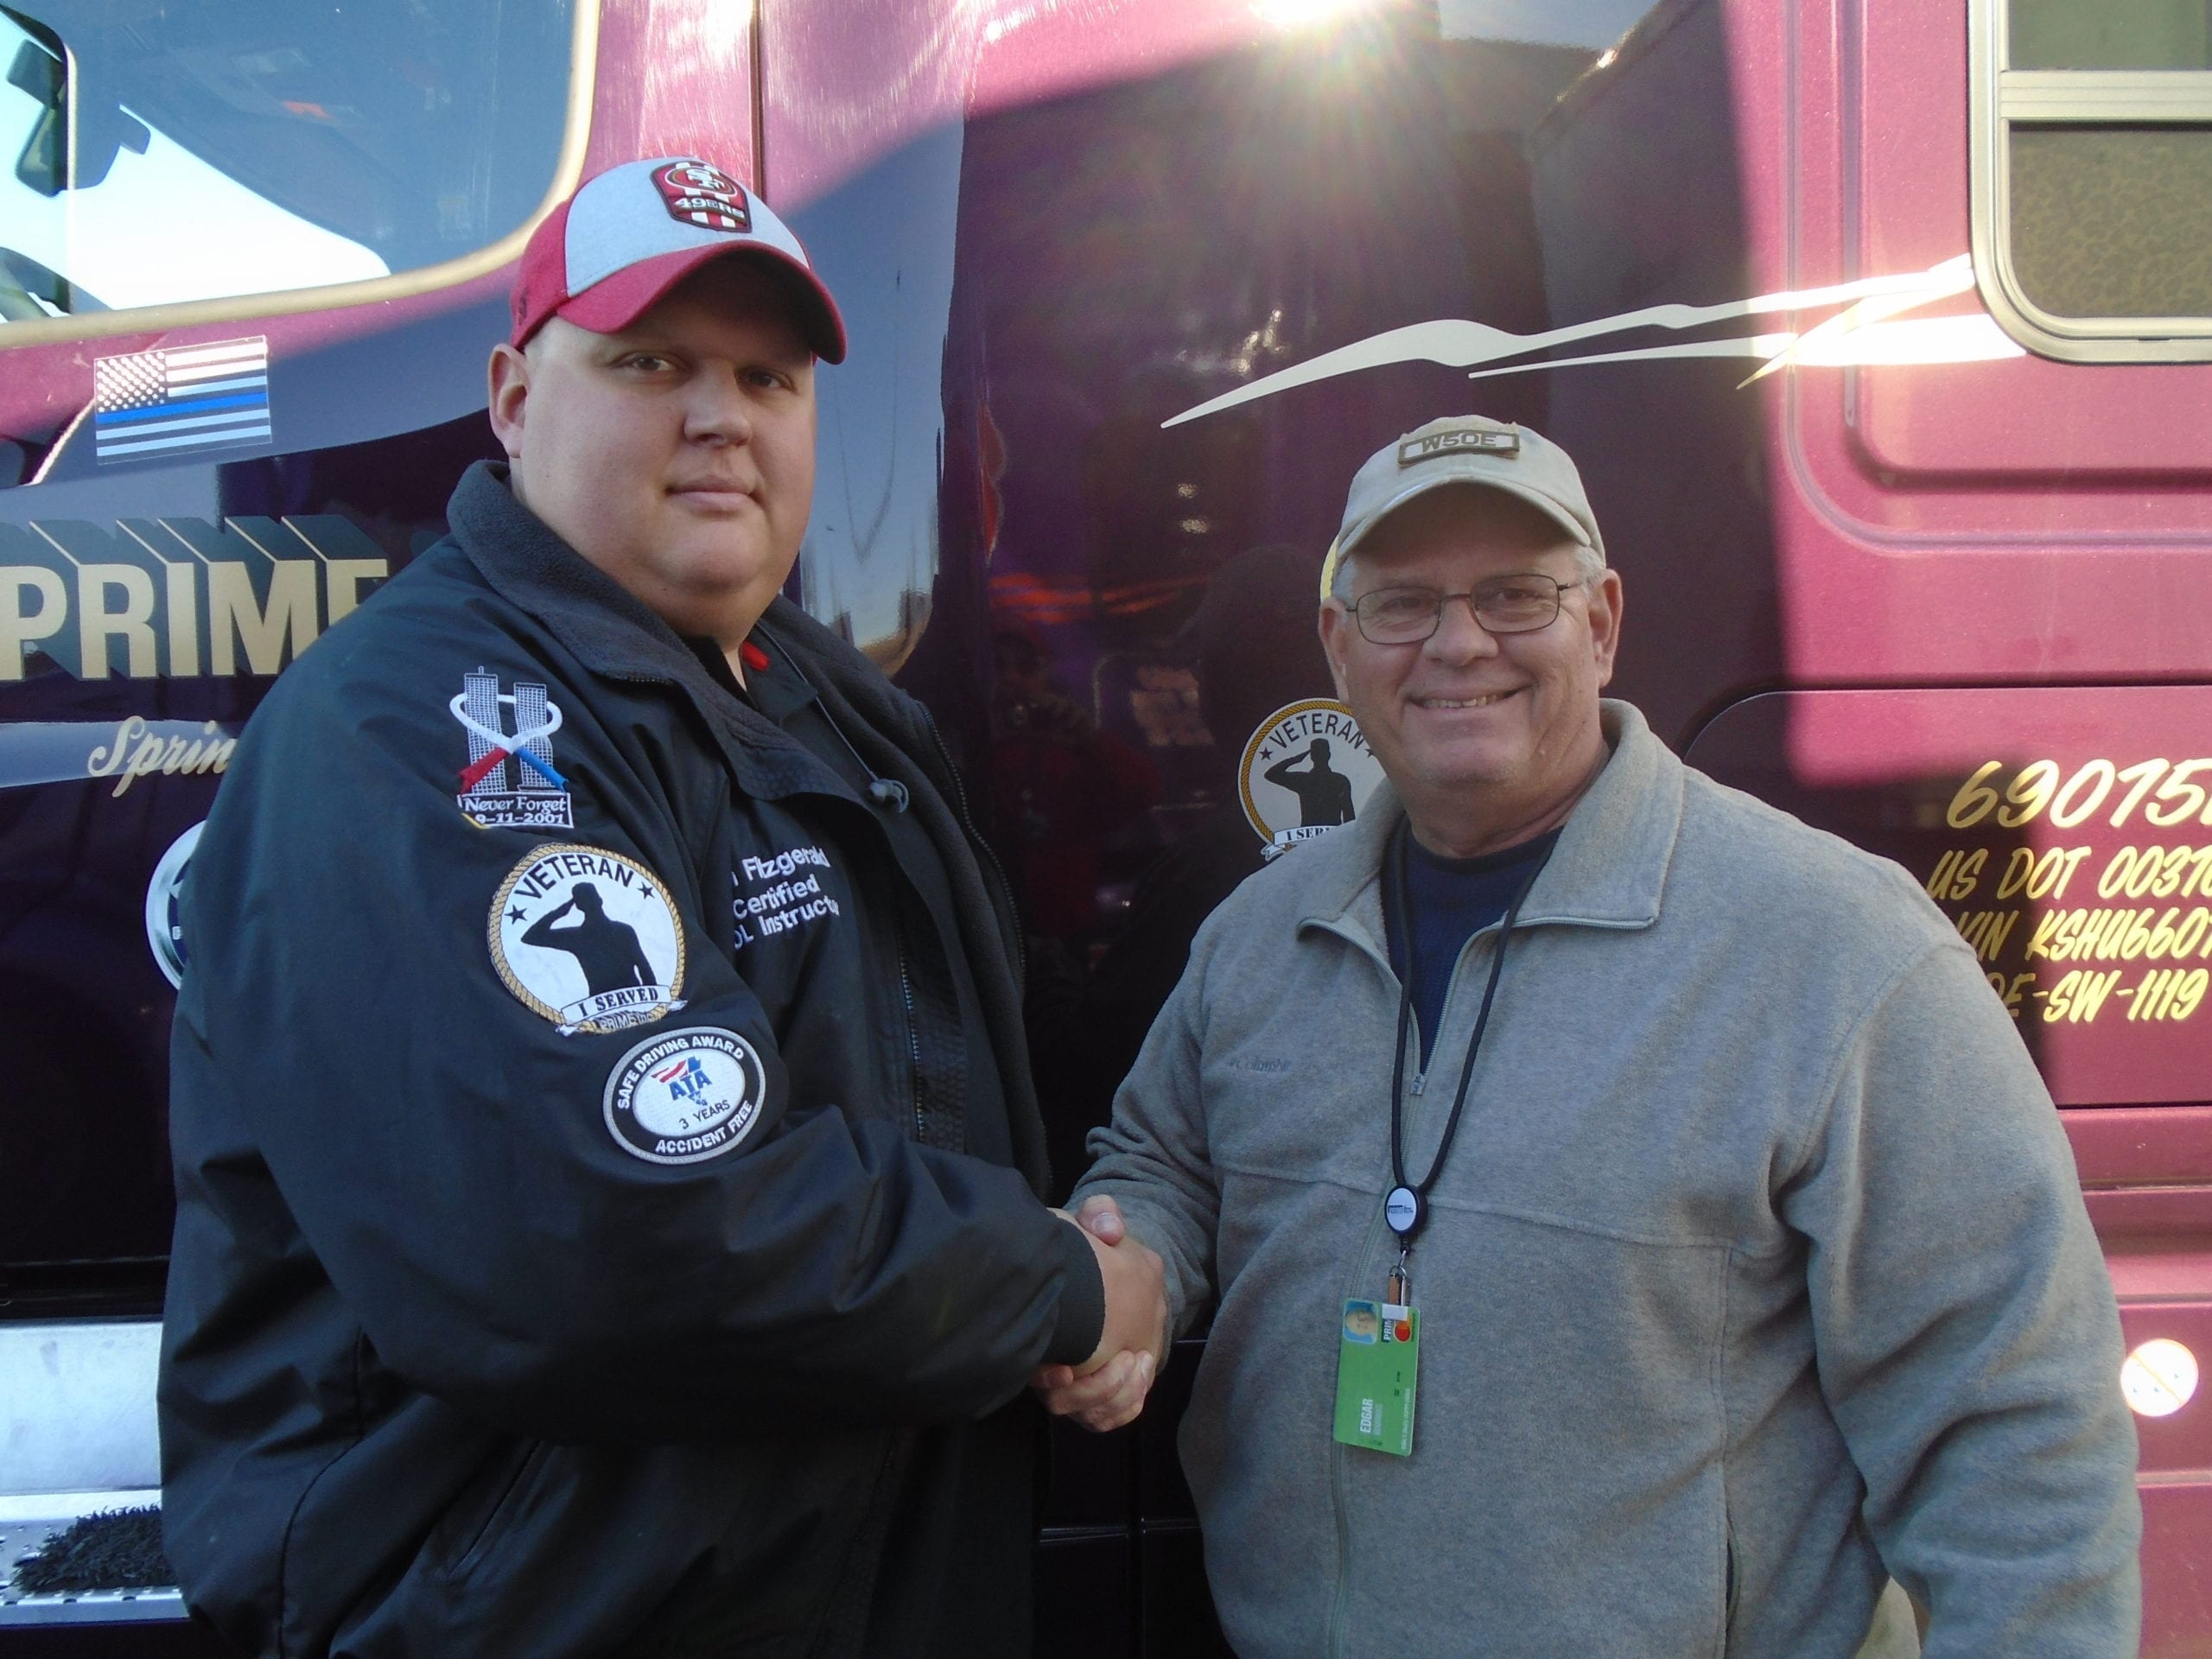 Prime driver and instructor shake hands in front of semi-truck.